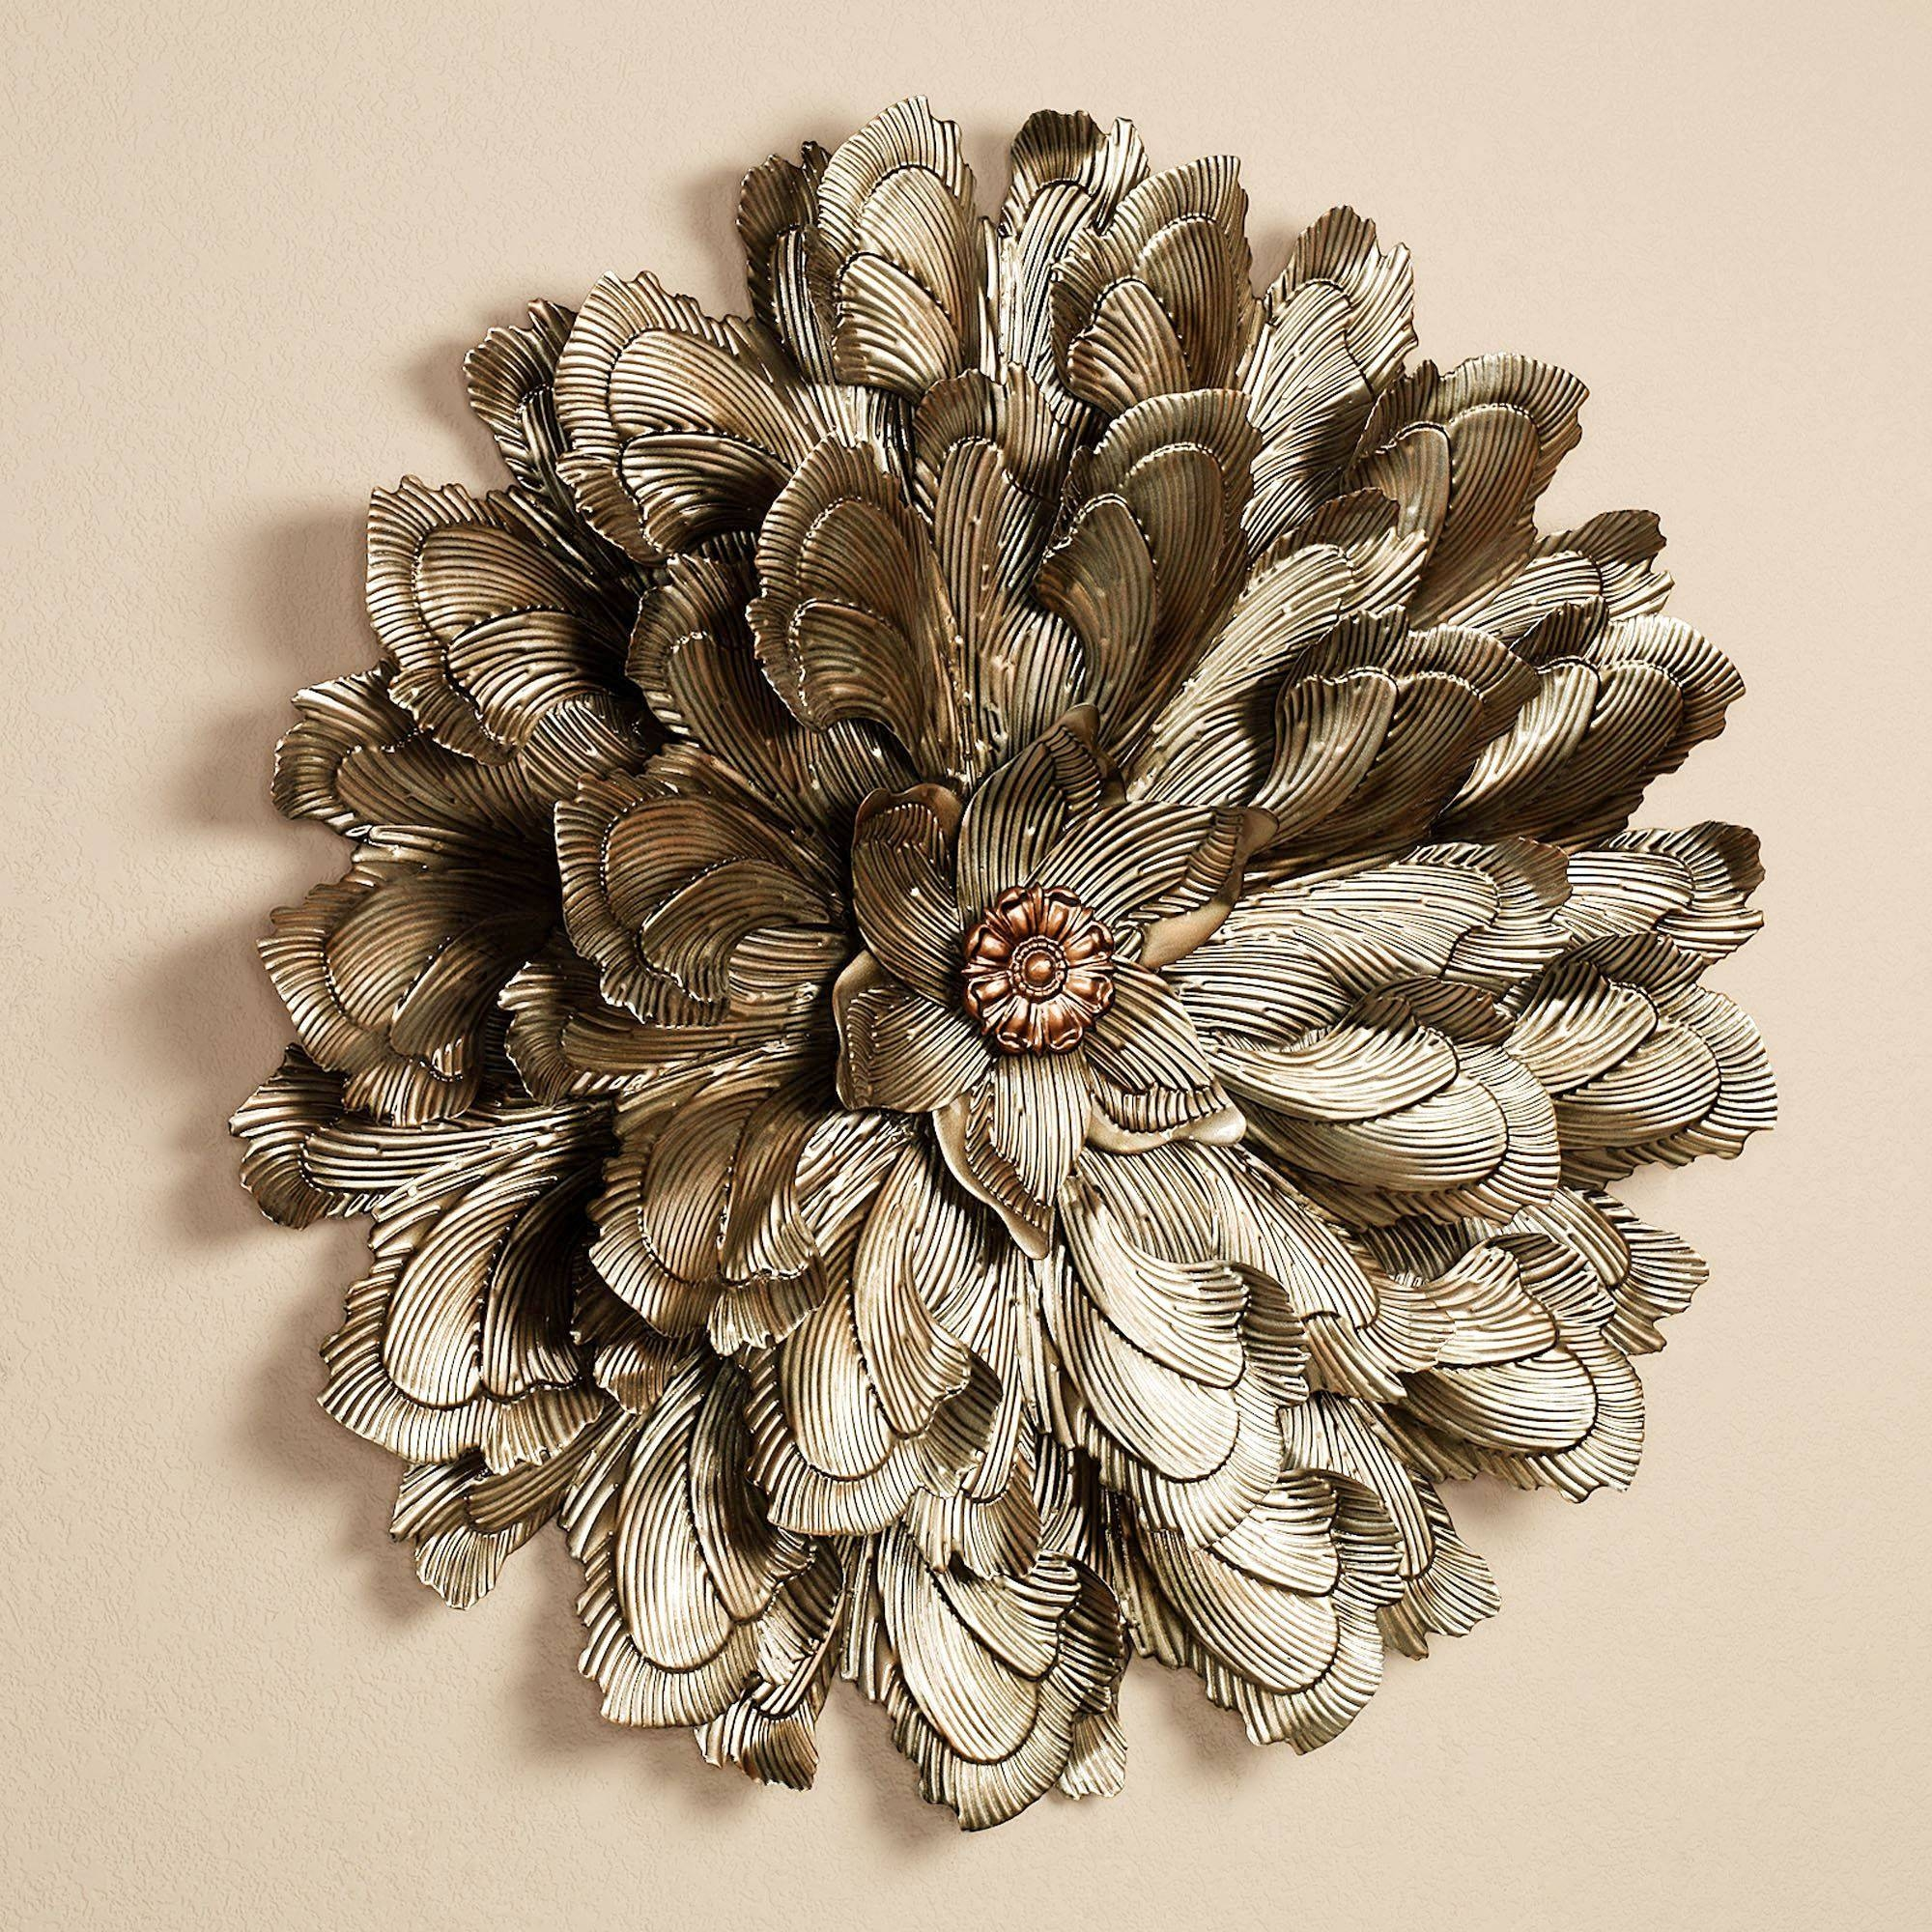 41 Silver Metal Wall Art Flowers, Home Metal Wall Art Wall Decor For Recent Silver Metal Wall Art Flowers (Gallery 2 of 20)